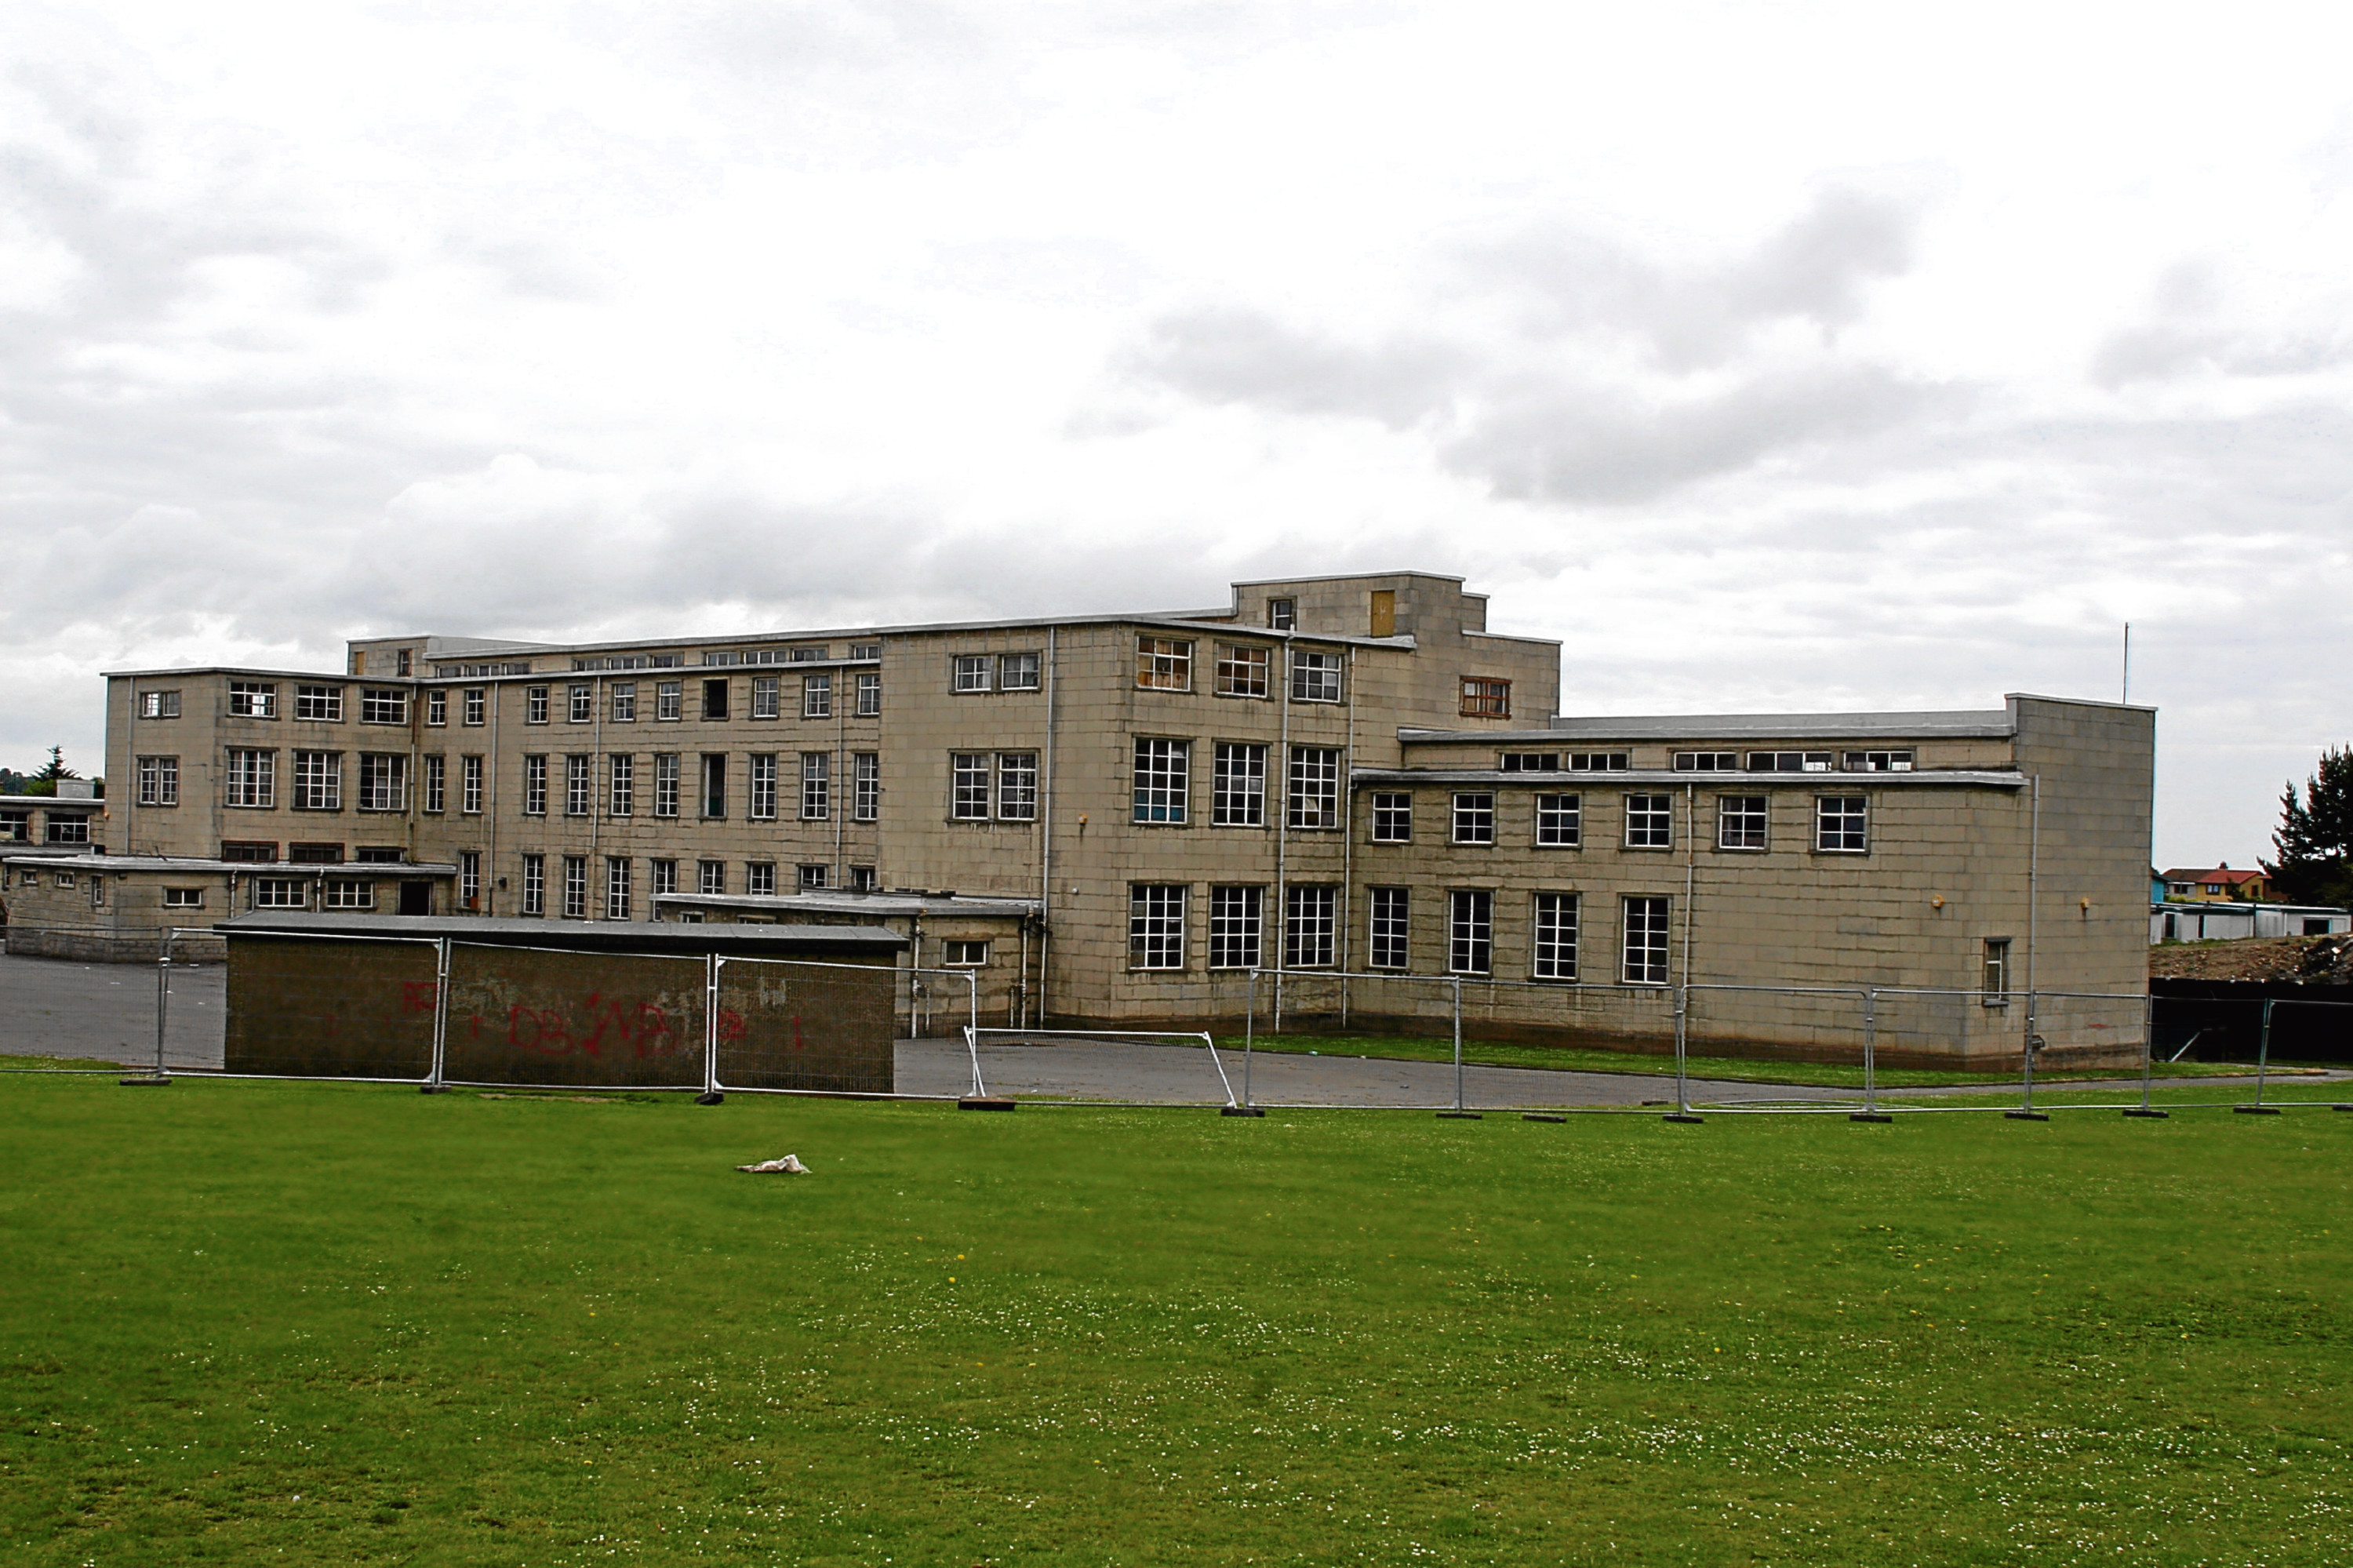 Macalpine Primary School, pictured following its closure in 2008, when it became a target for vandals.